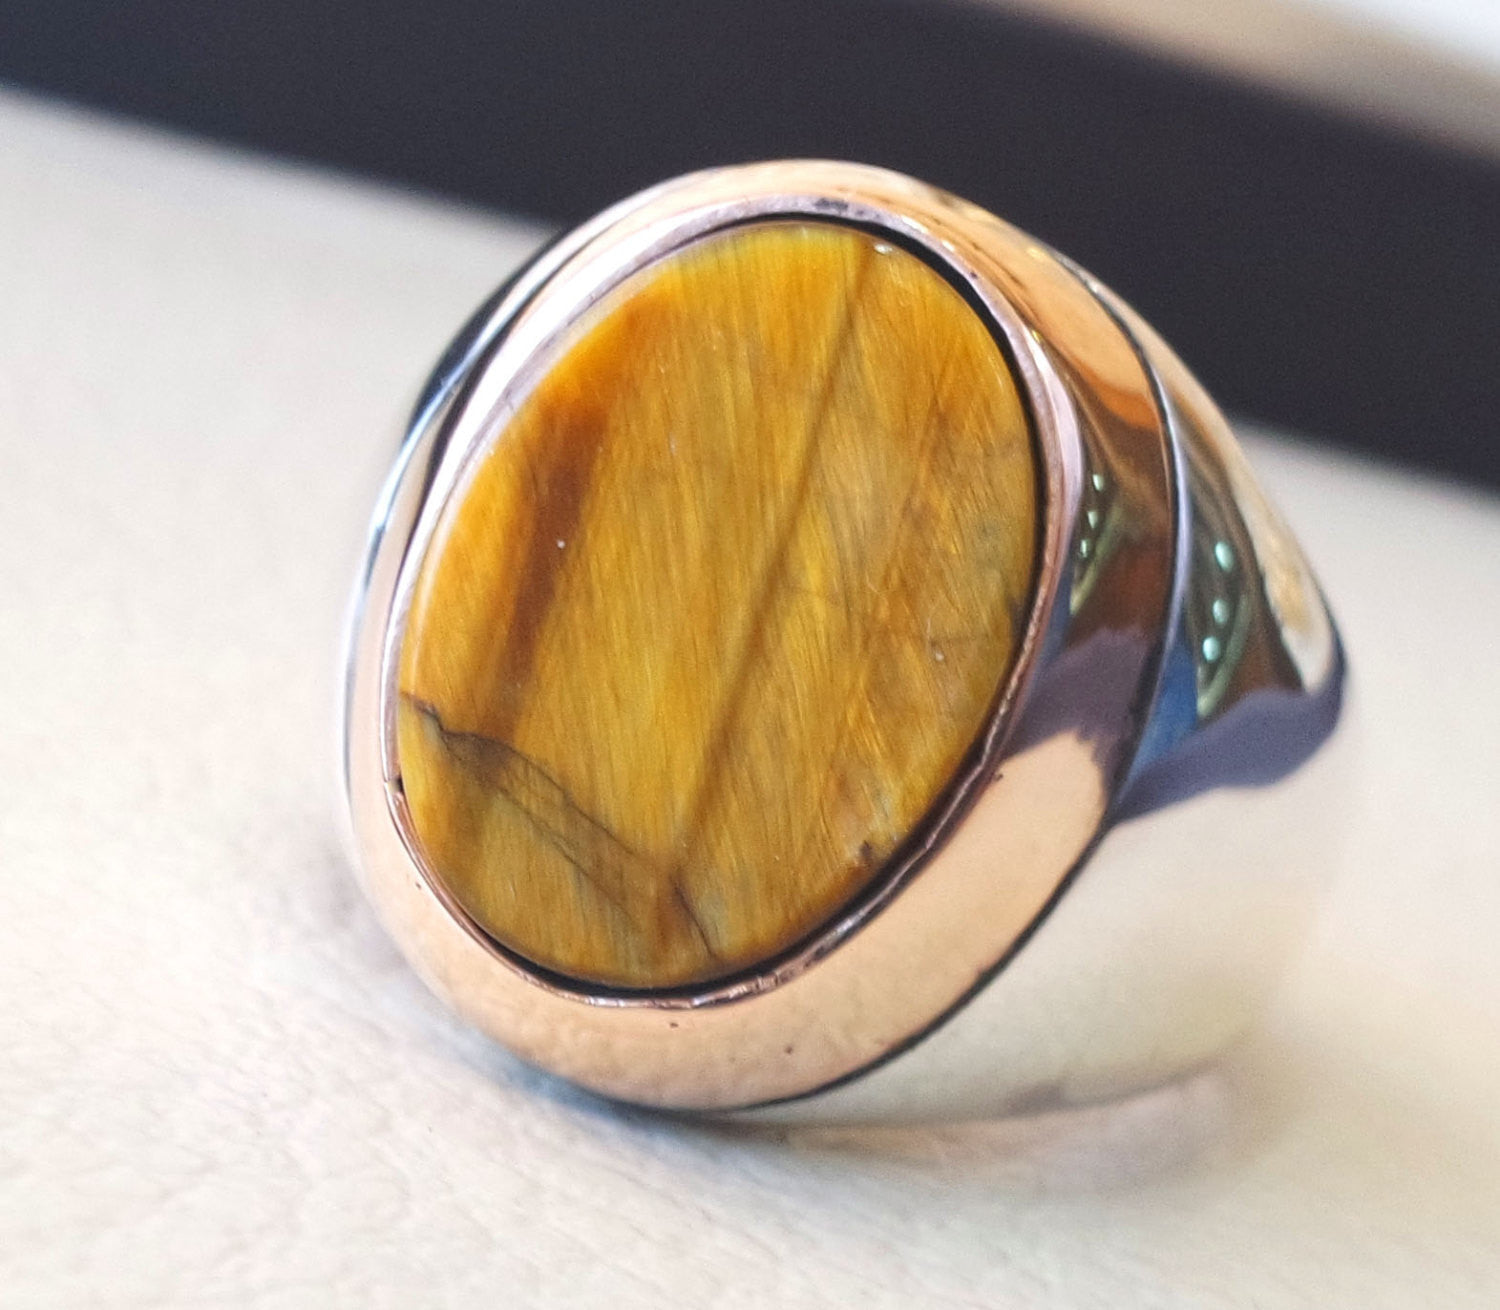 men ring tiger eye cat eye natural flat semi precious oval stone ottoman antique ottoman arabic style two tone sterling silver 925